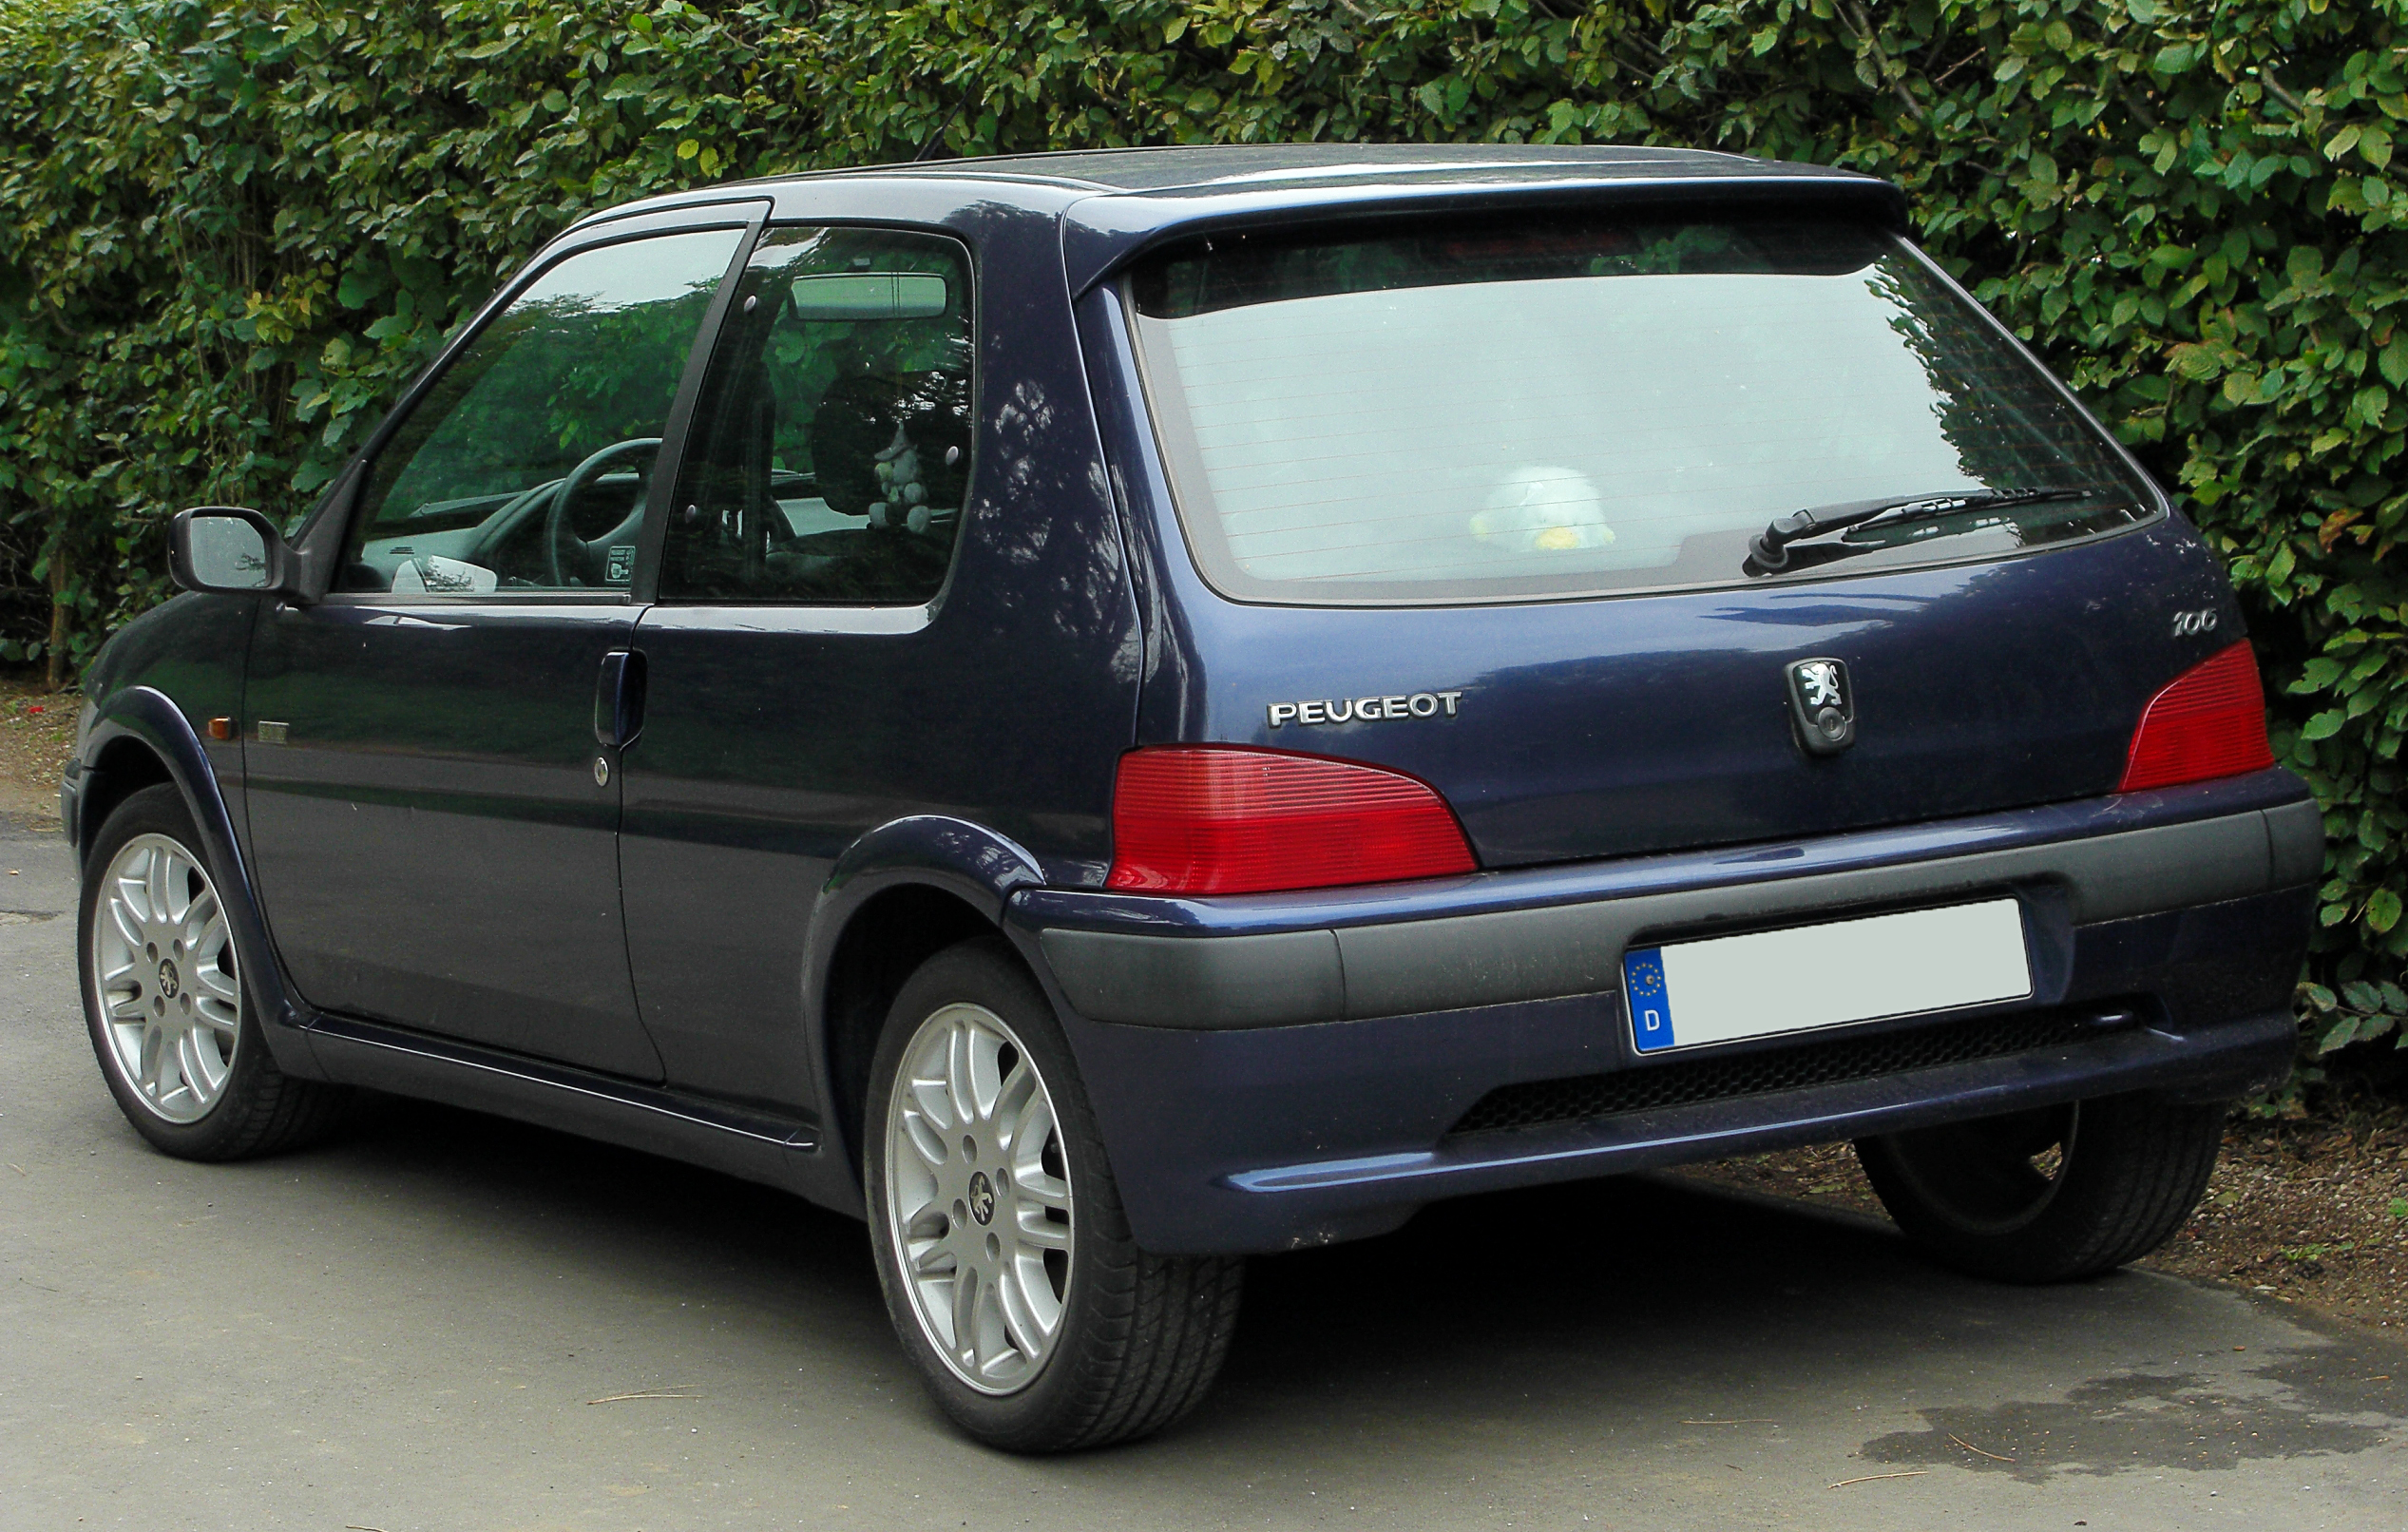 file peugeot 106 sport facelift rear wikimedia commons. Black Bedroom Furniture Sets. Home Design Ideas